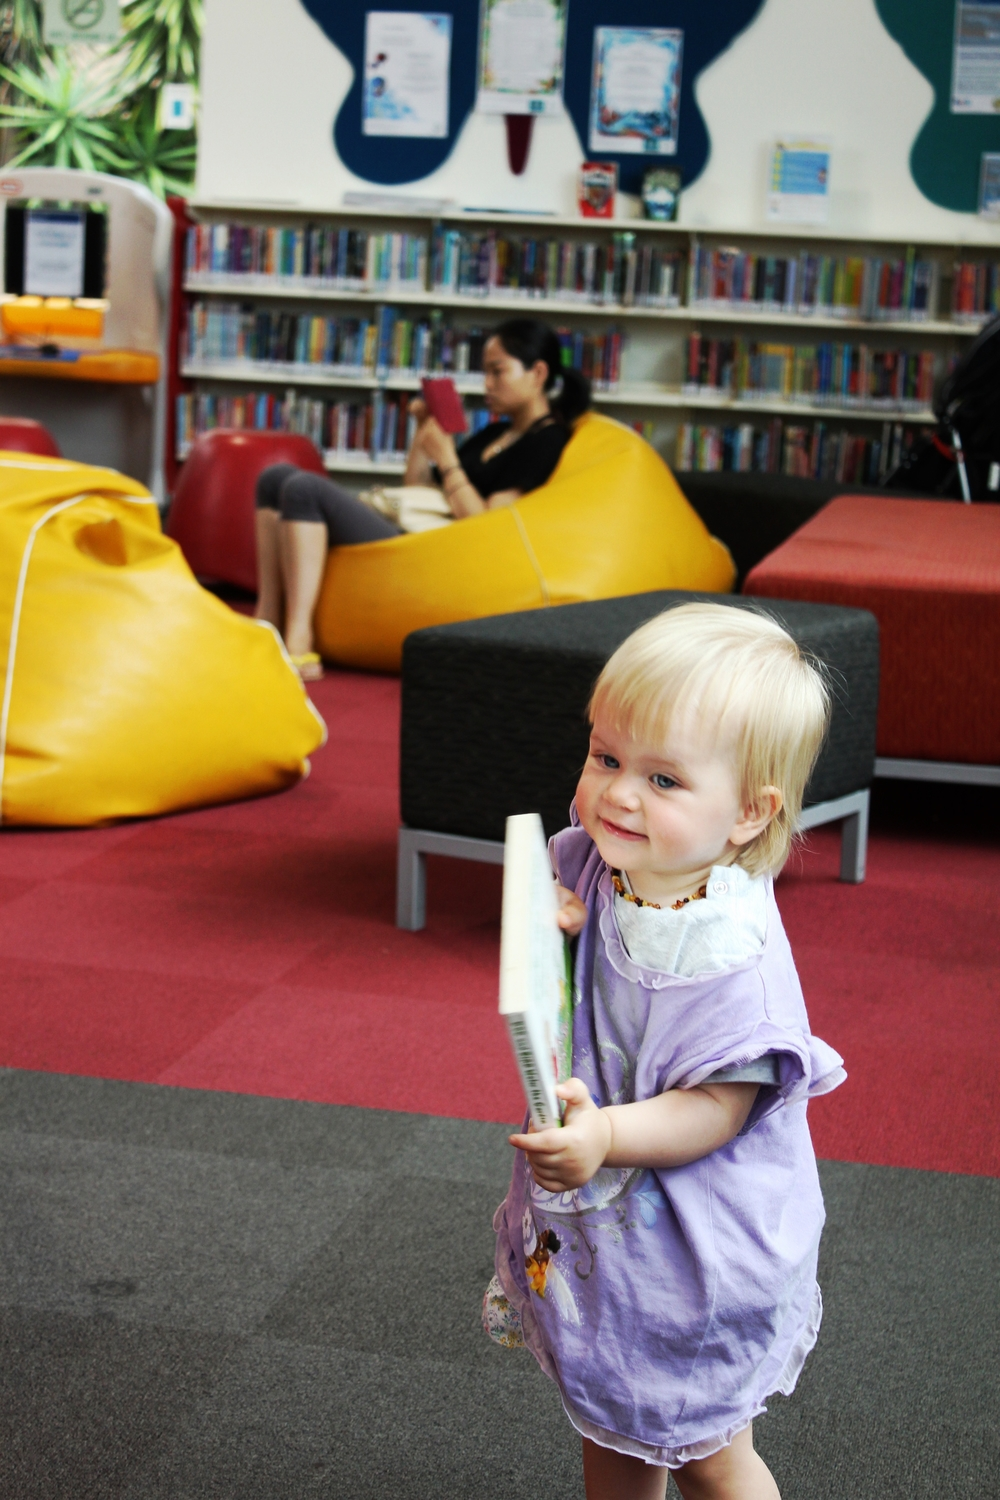 altona meadows library, altona meadows - Mamma Knows West